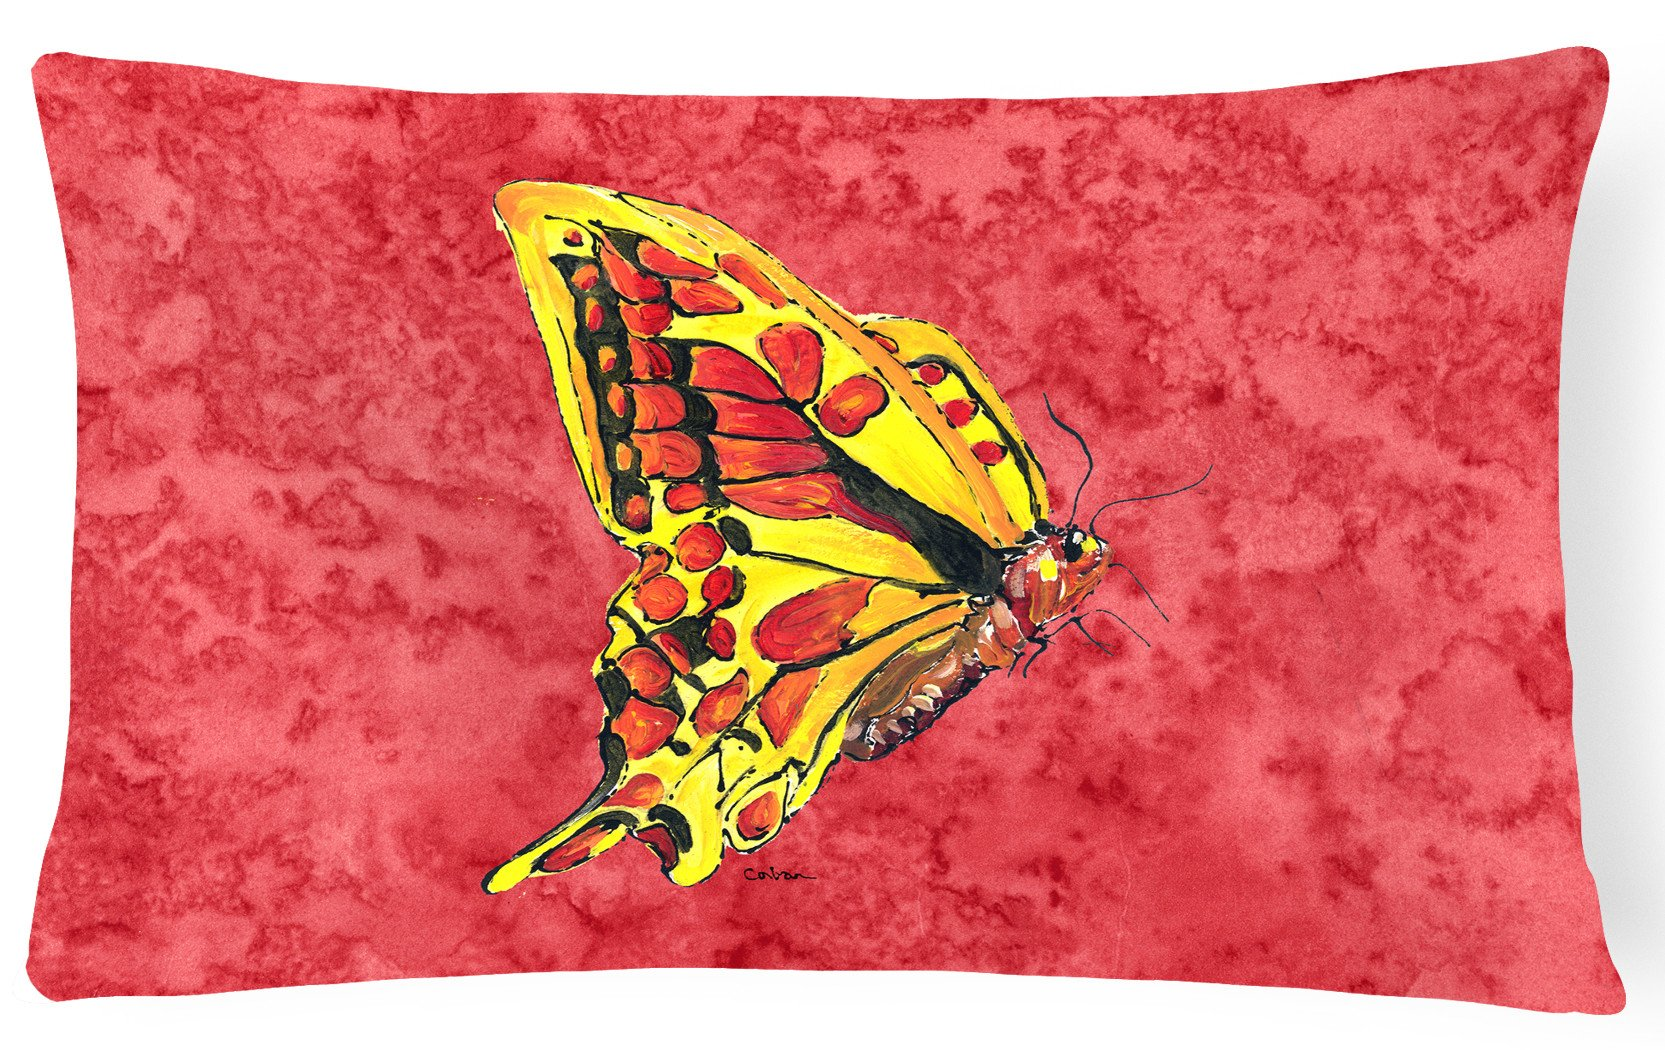 Butterfly on Red   Canvas Fabric Decorative Pillow by Caroline's Treasures